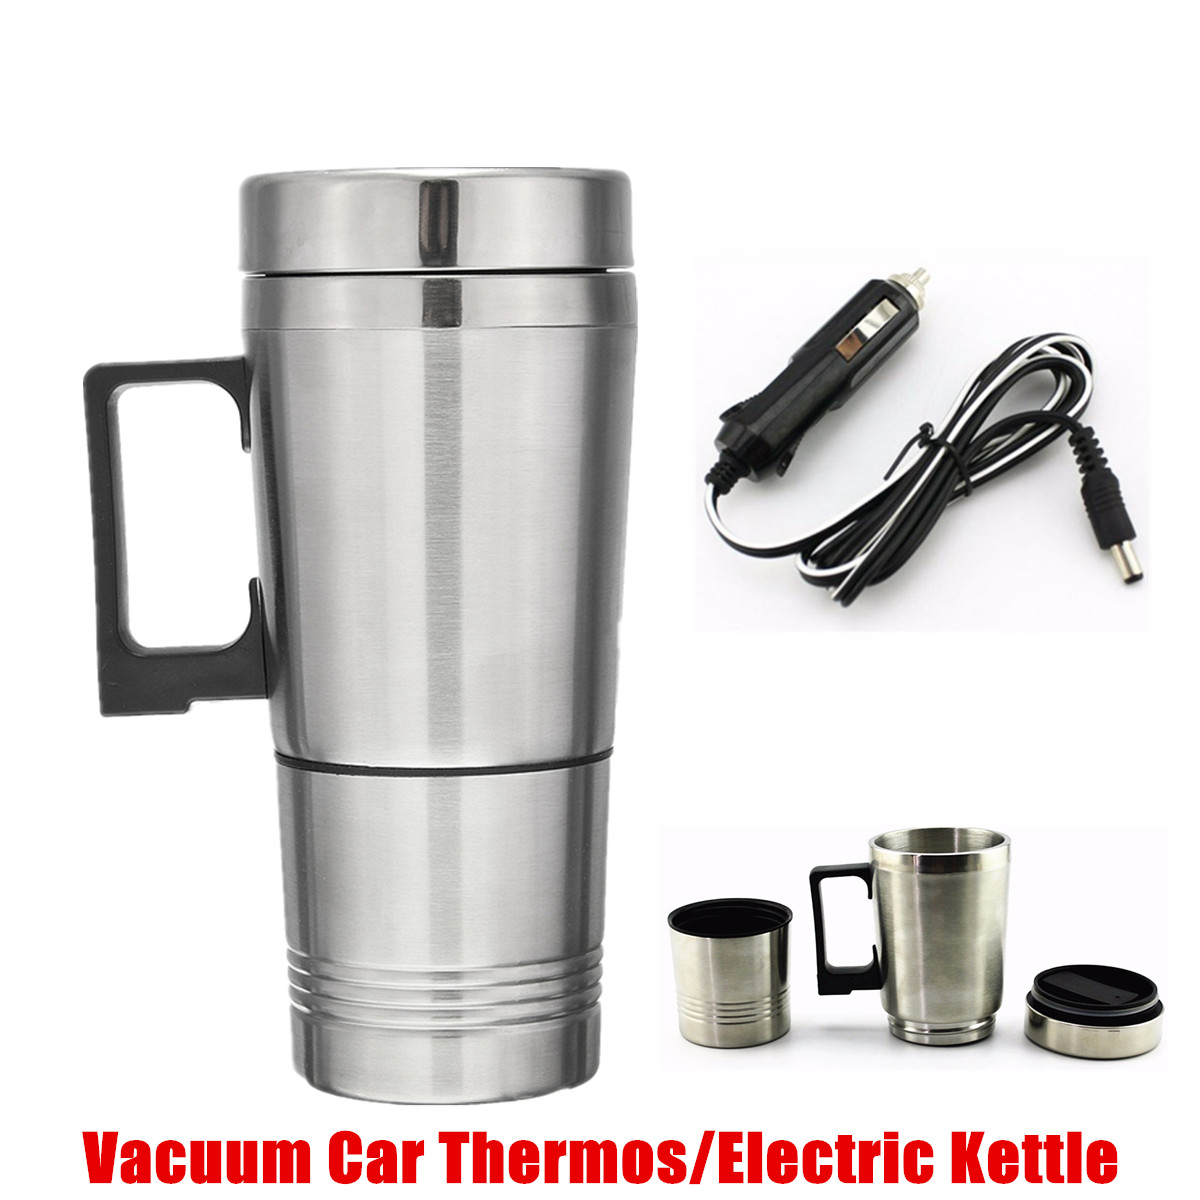 12V Stainless Steel Car Heating Cup Milk Water Tea Coffee Bottle Warmer Heated Travel Mug Traveling Camping Vehicle Heating Cup